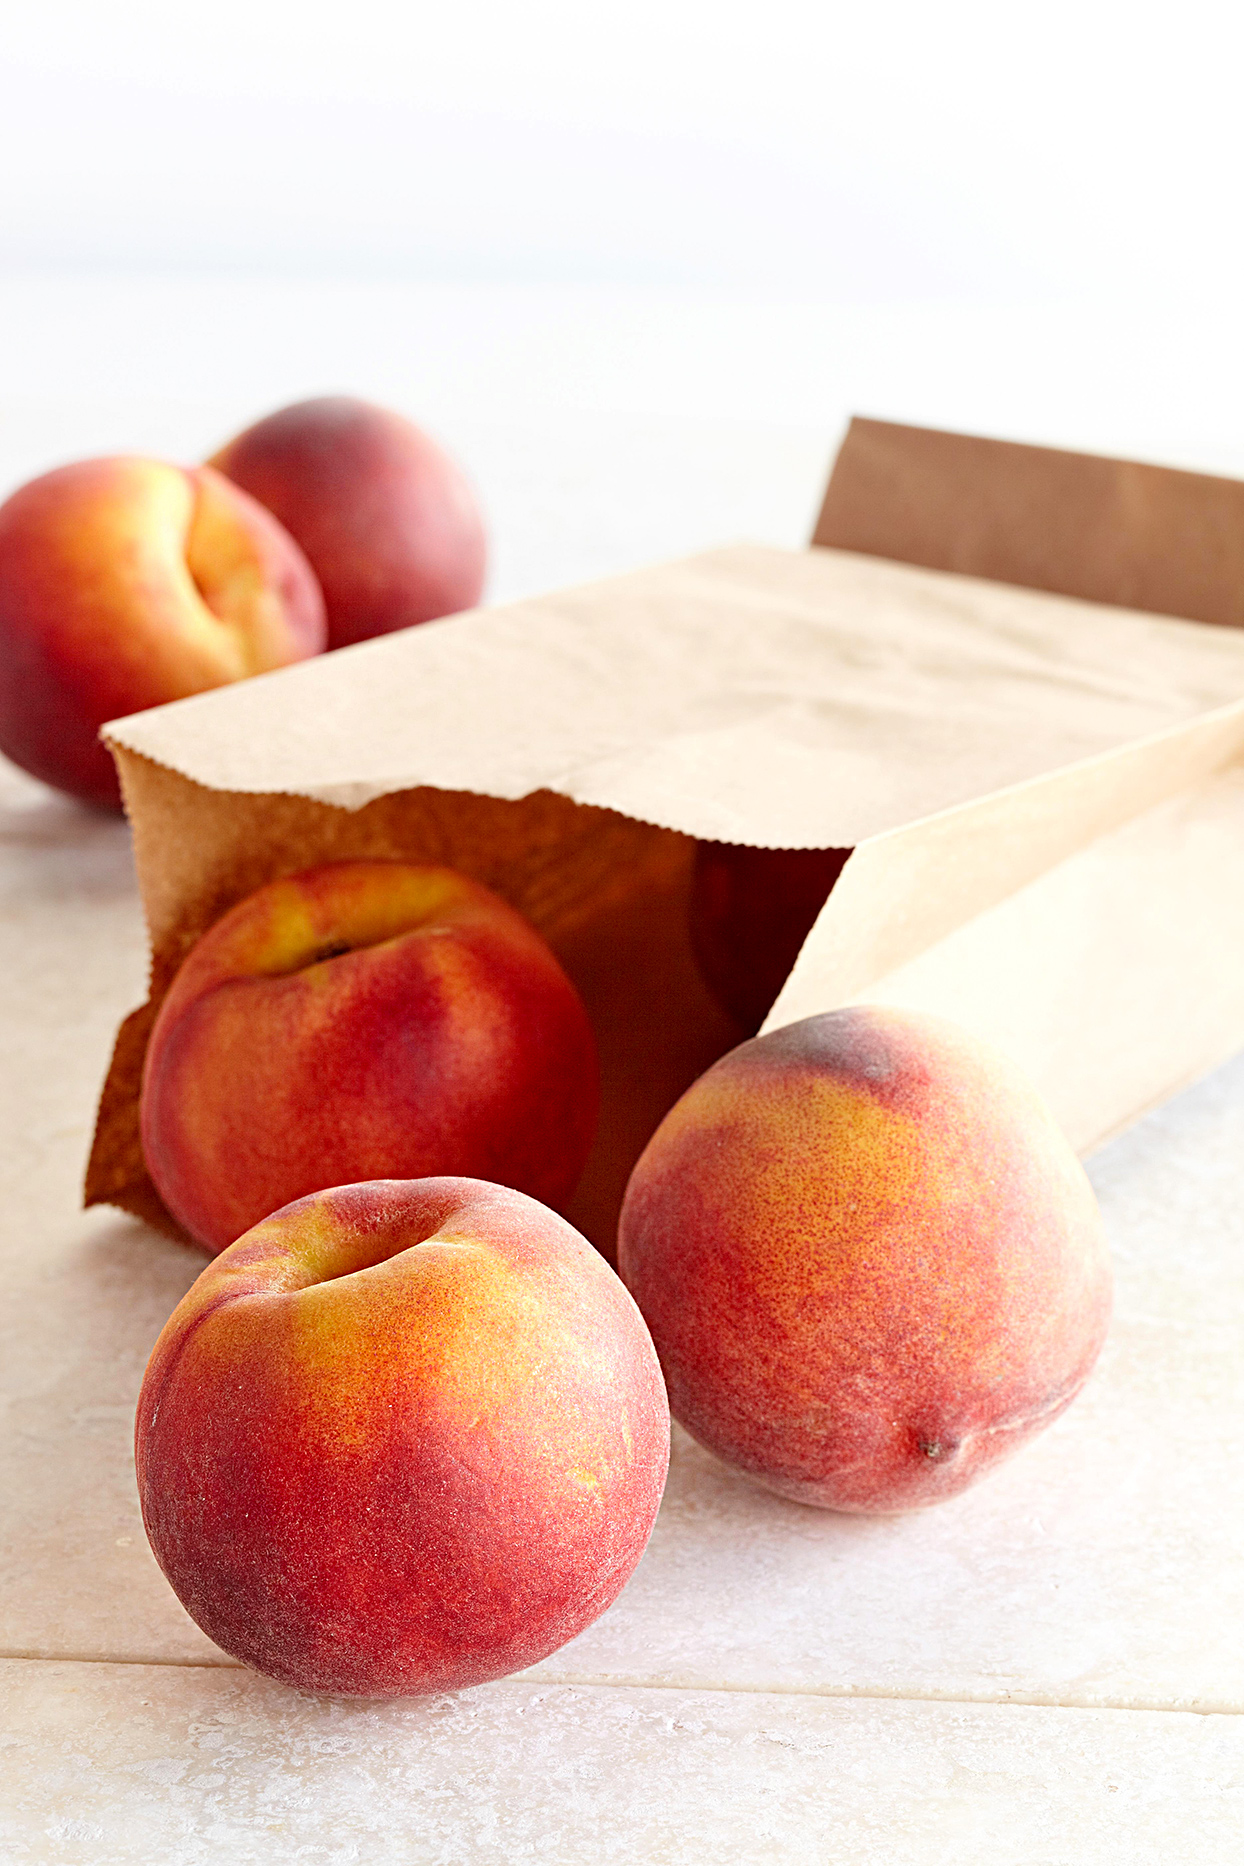 peaches in a paper bag